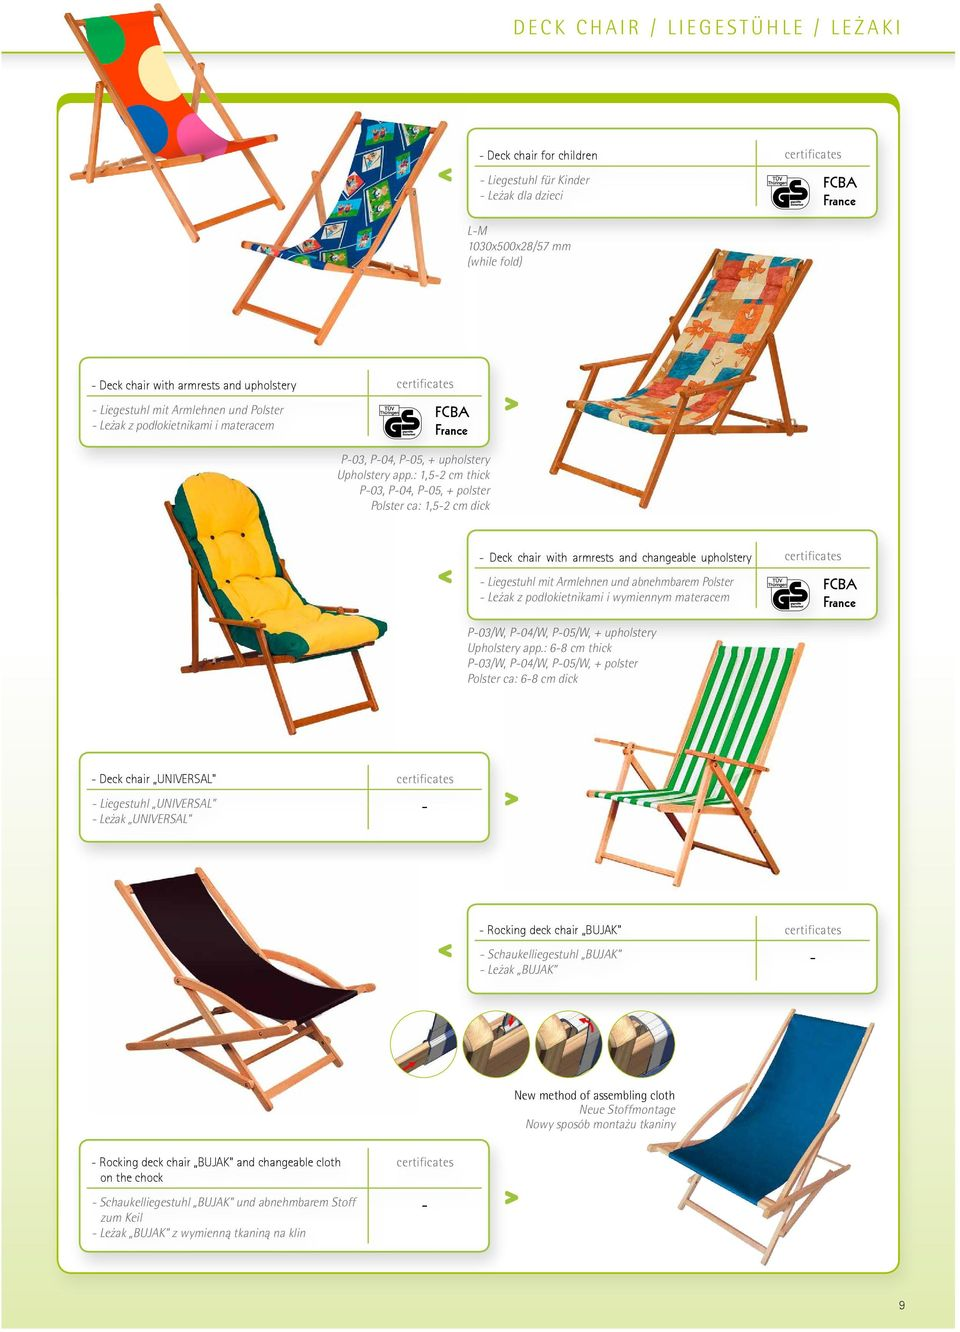 : 1,52 cm thick P03, P04, P05, + polster Polster ca: 1,52 cm dick Deck chair with armrests and changeable upholstery certificates Liegestuhl mit Armlehnen und abnehmbarem Polster Leżak z